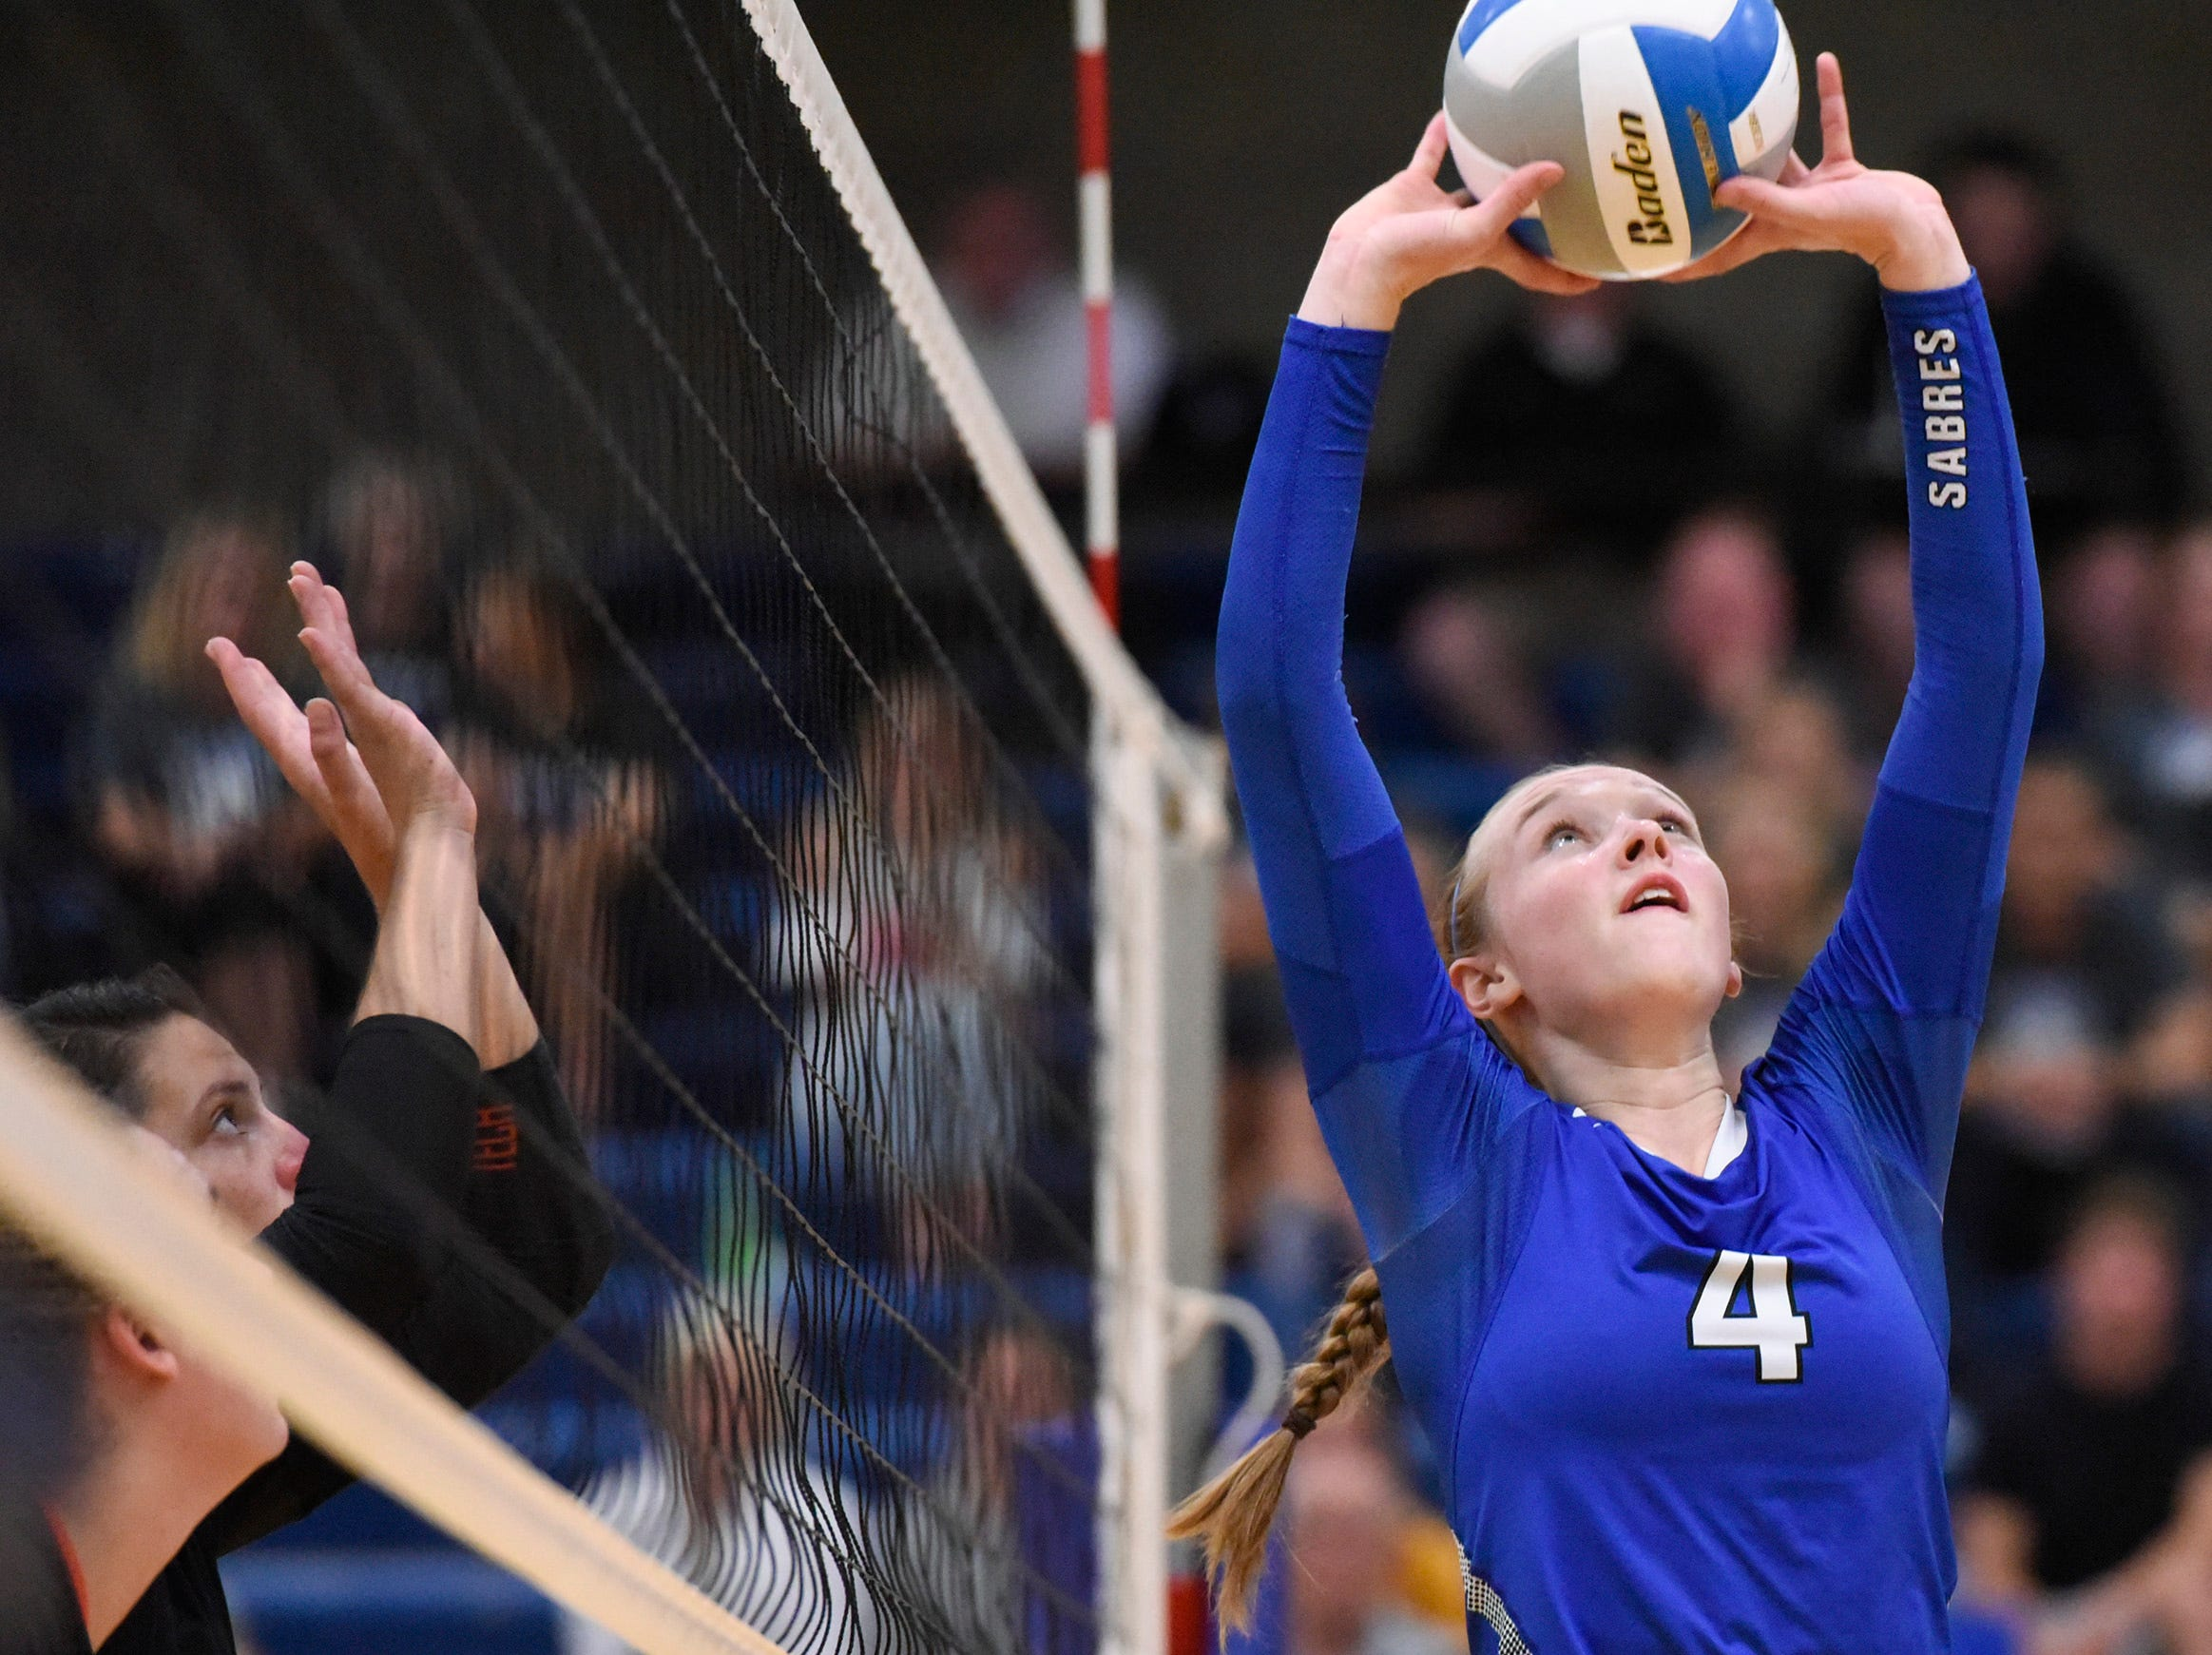 Sartell's Morgan Vosberg sets the ball at the net against Tech during the first game.